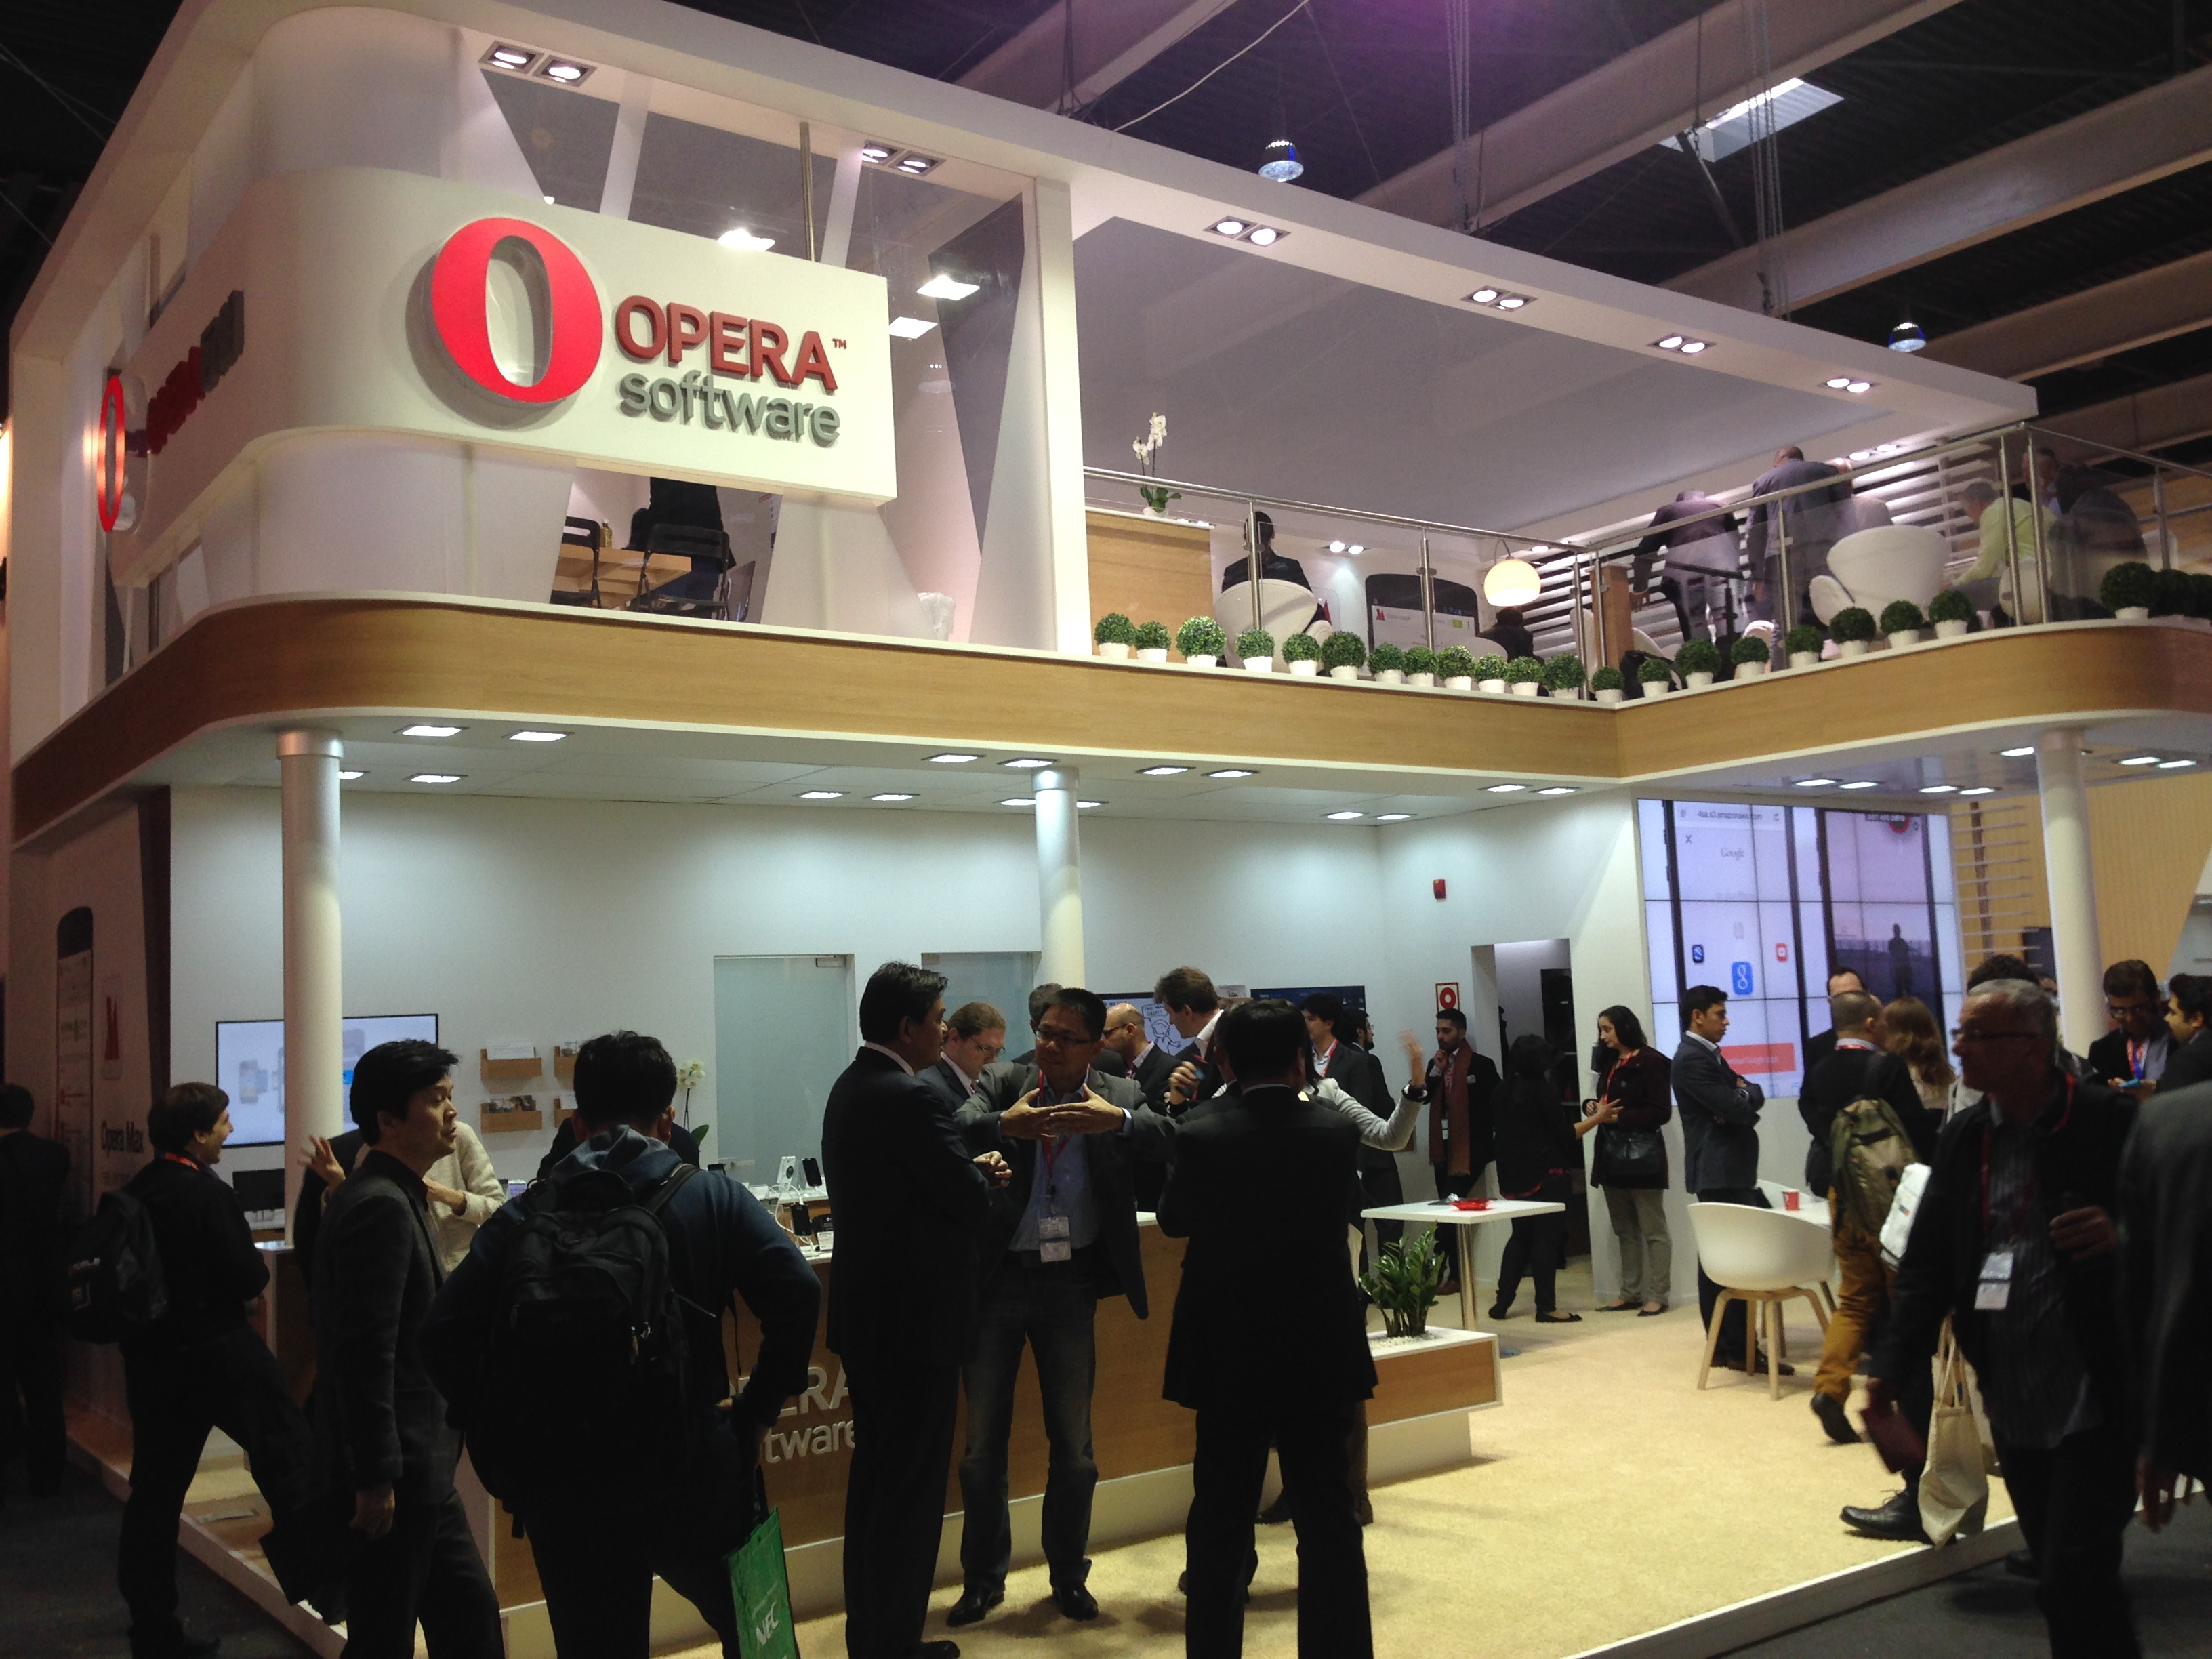 Opera Software stand at Mobile World Congress 2014